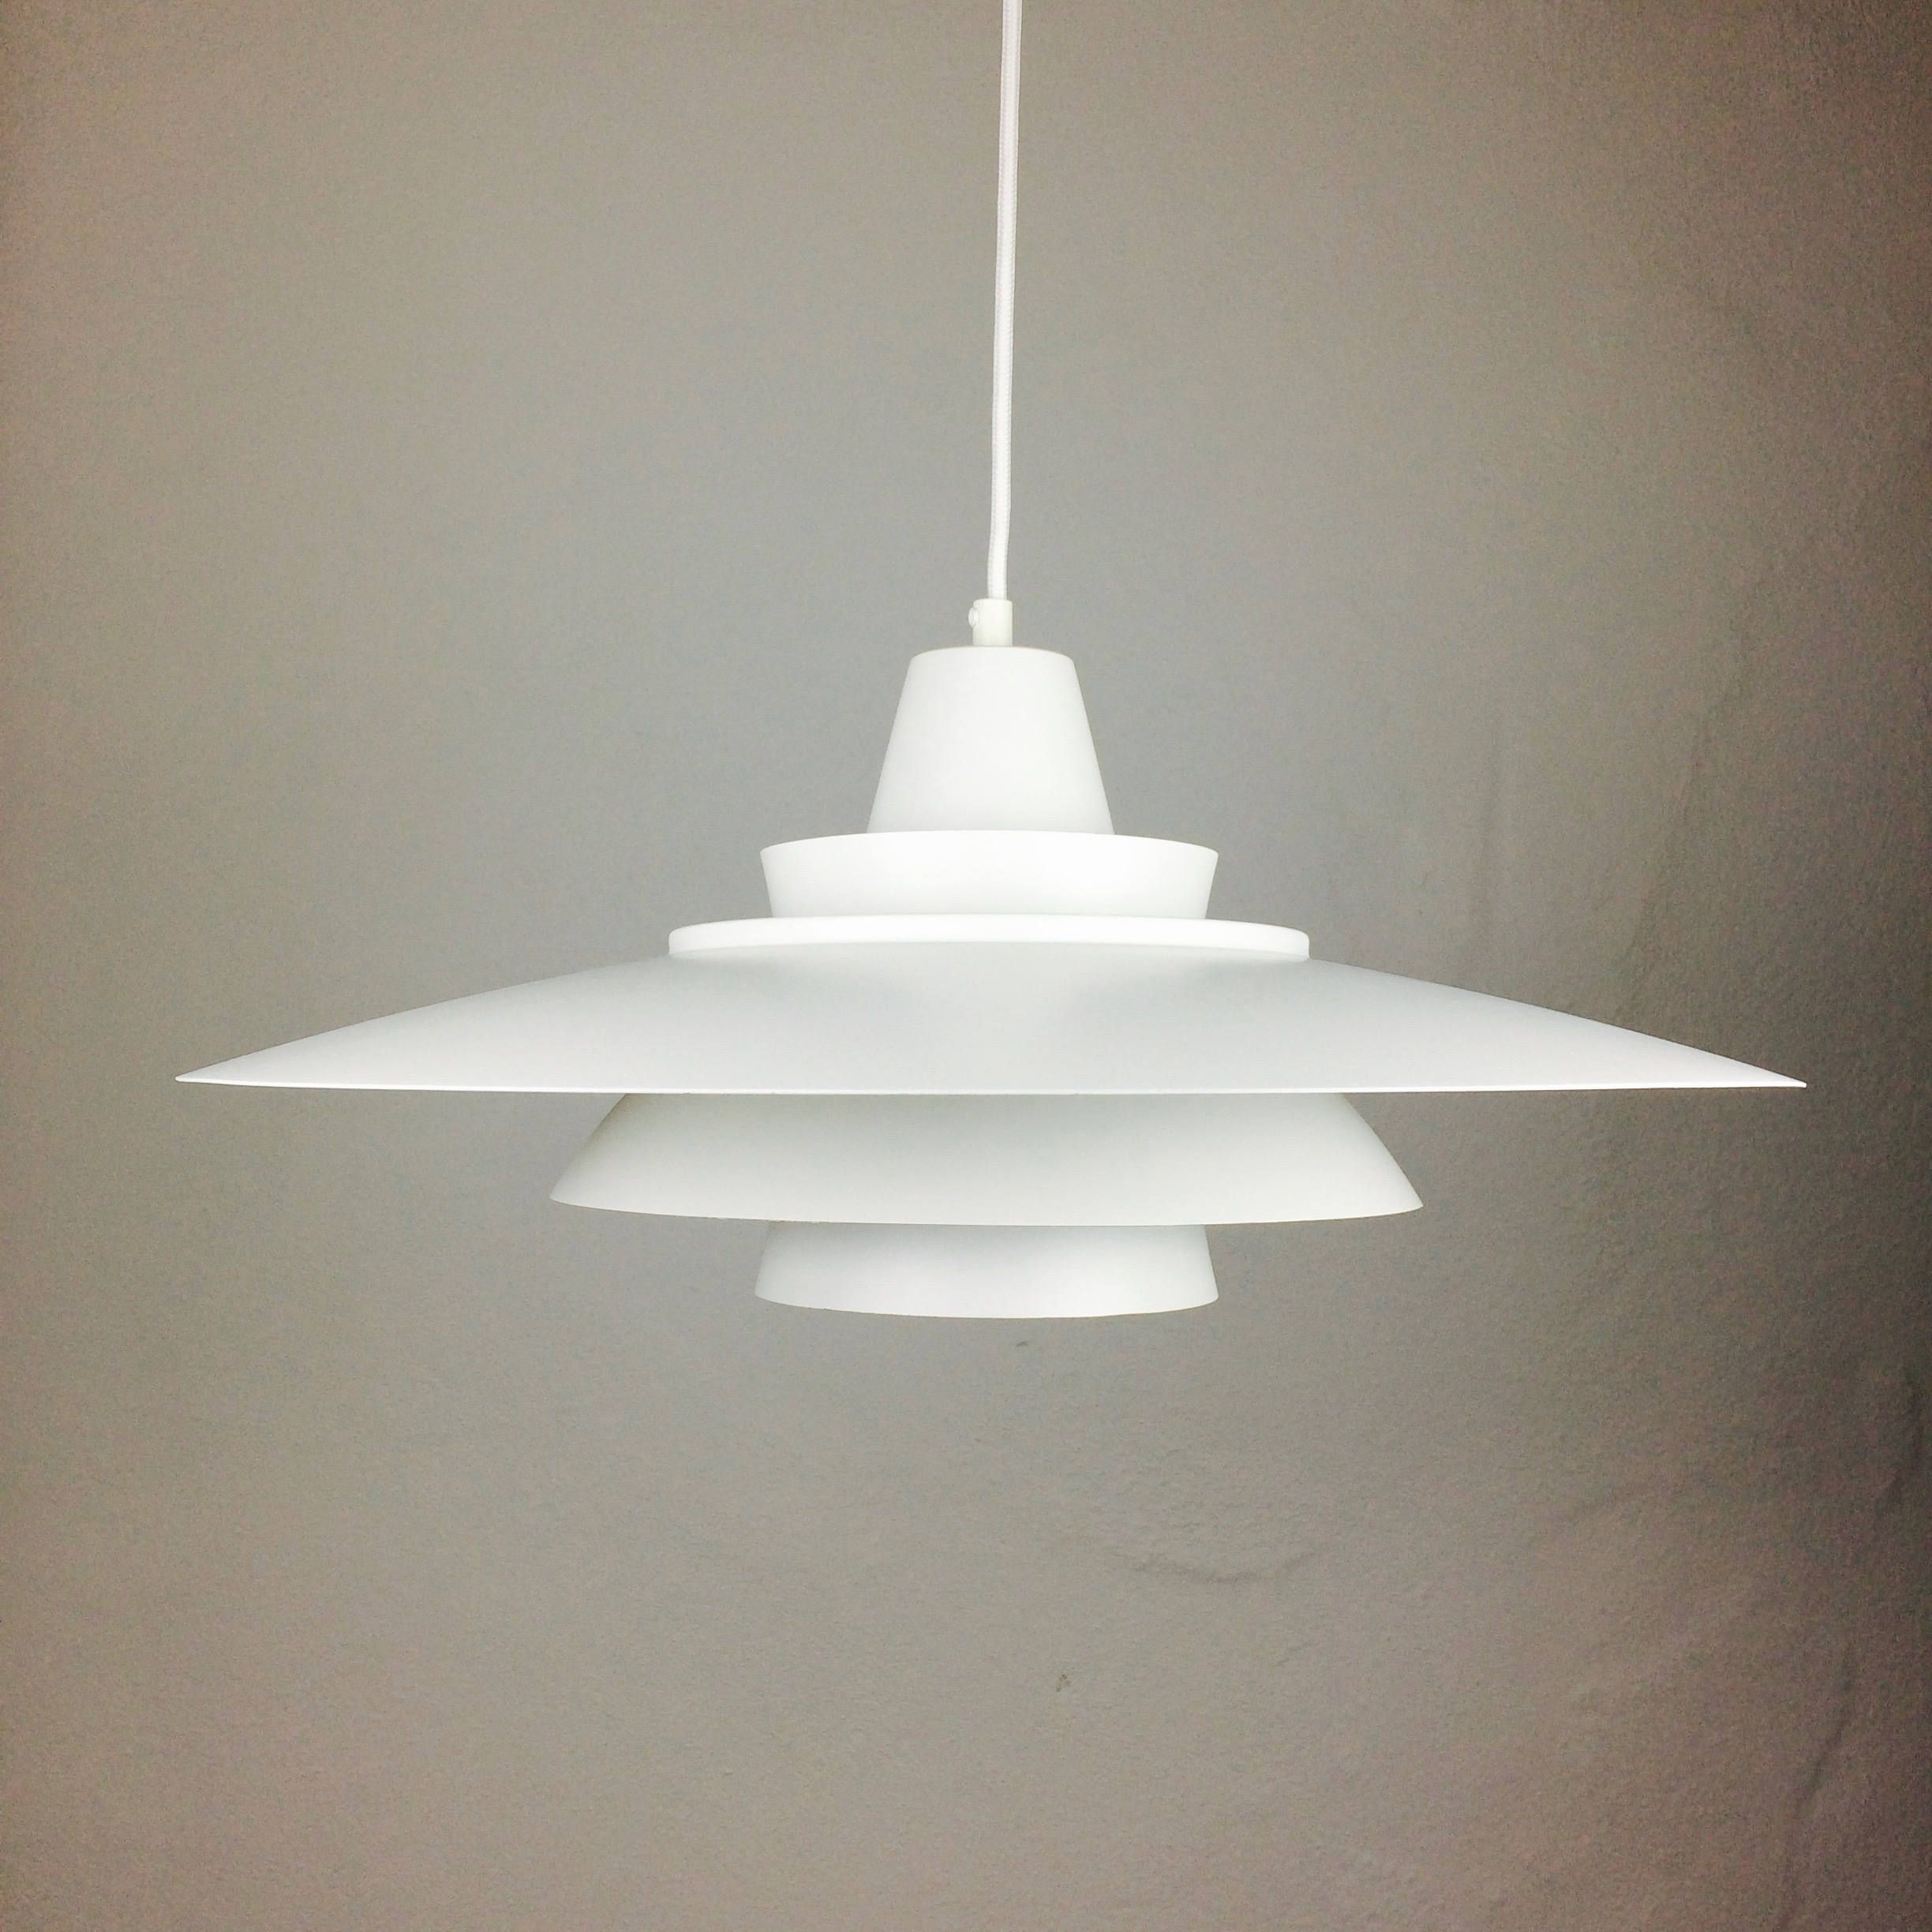 Super Light - Danish Vintage Design - 70s Mid Century Modern Fixture ...